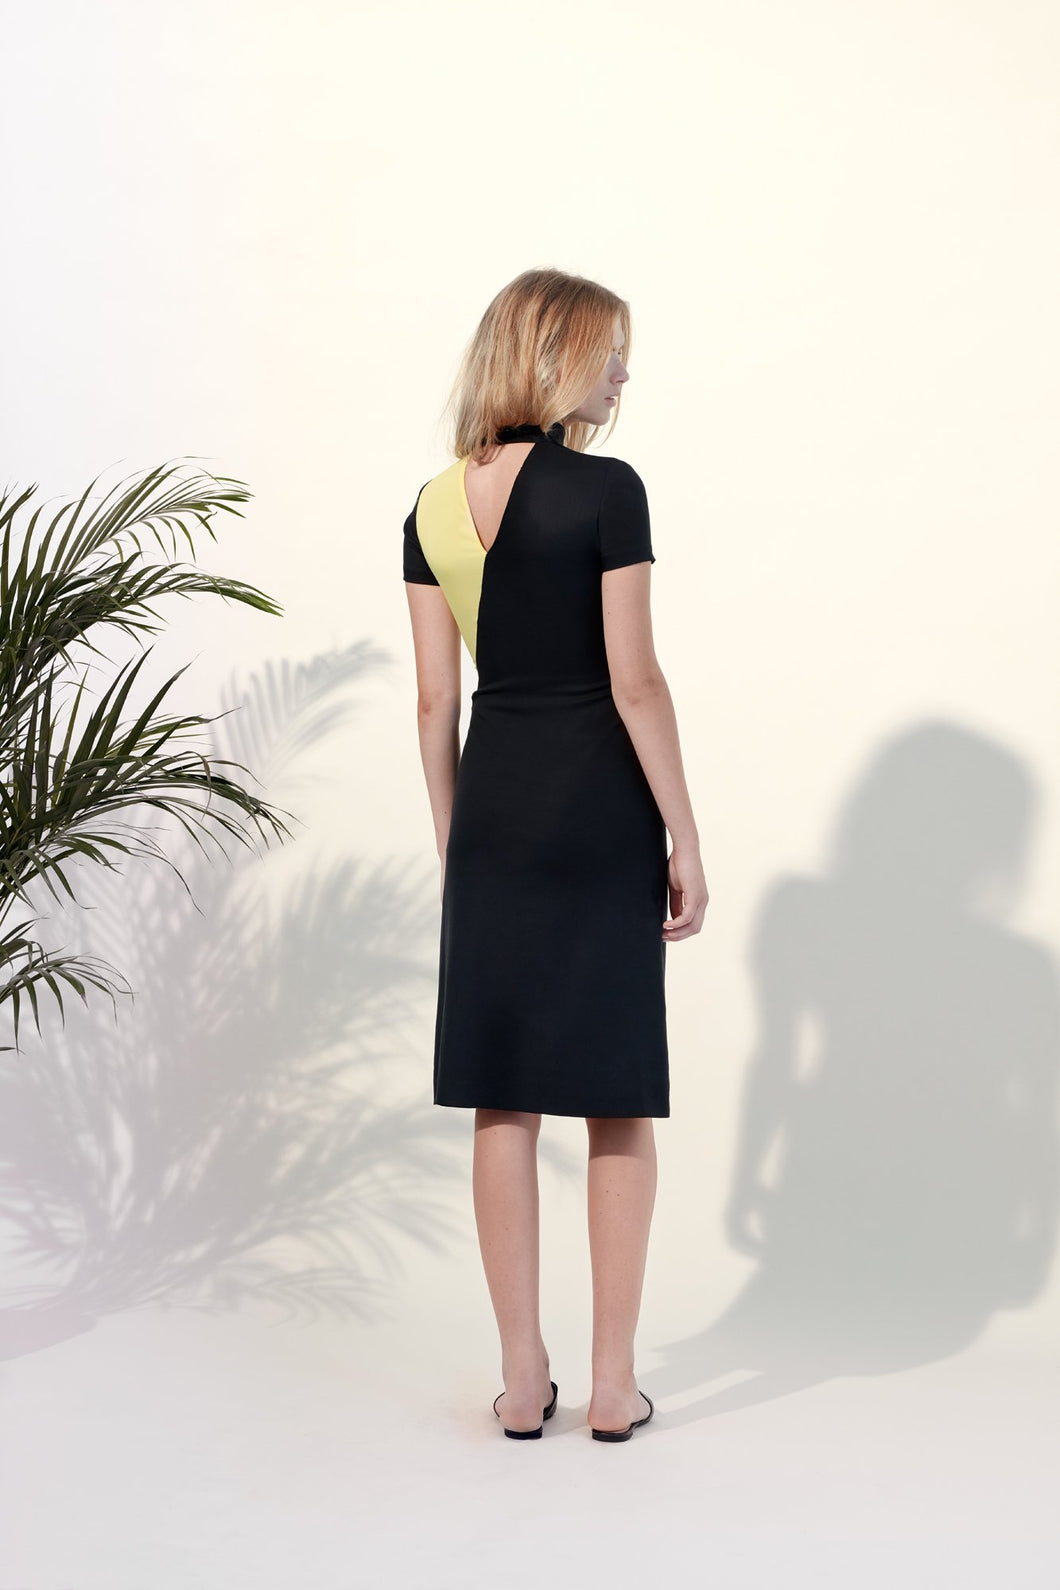 50% OFF OPEN BACK DRESS